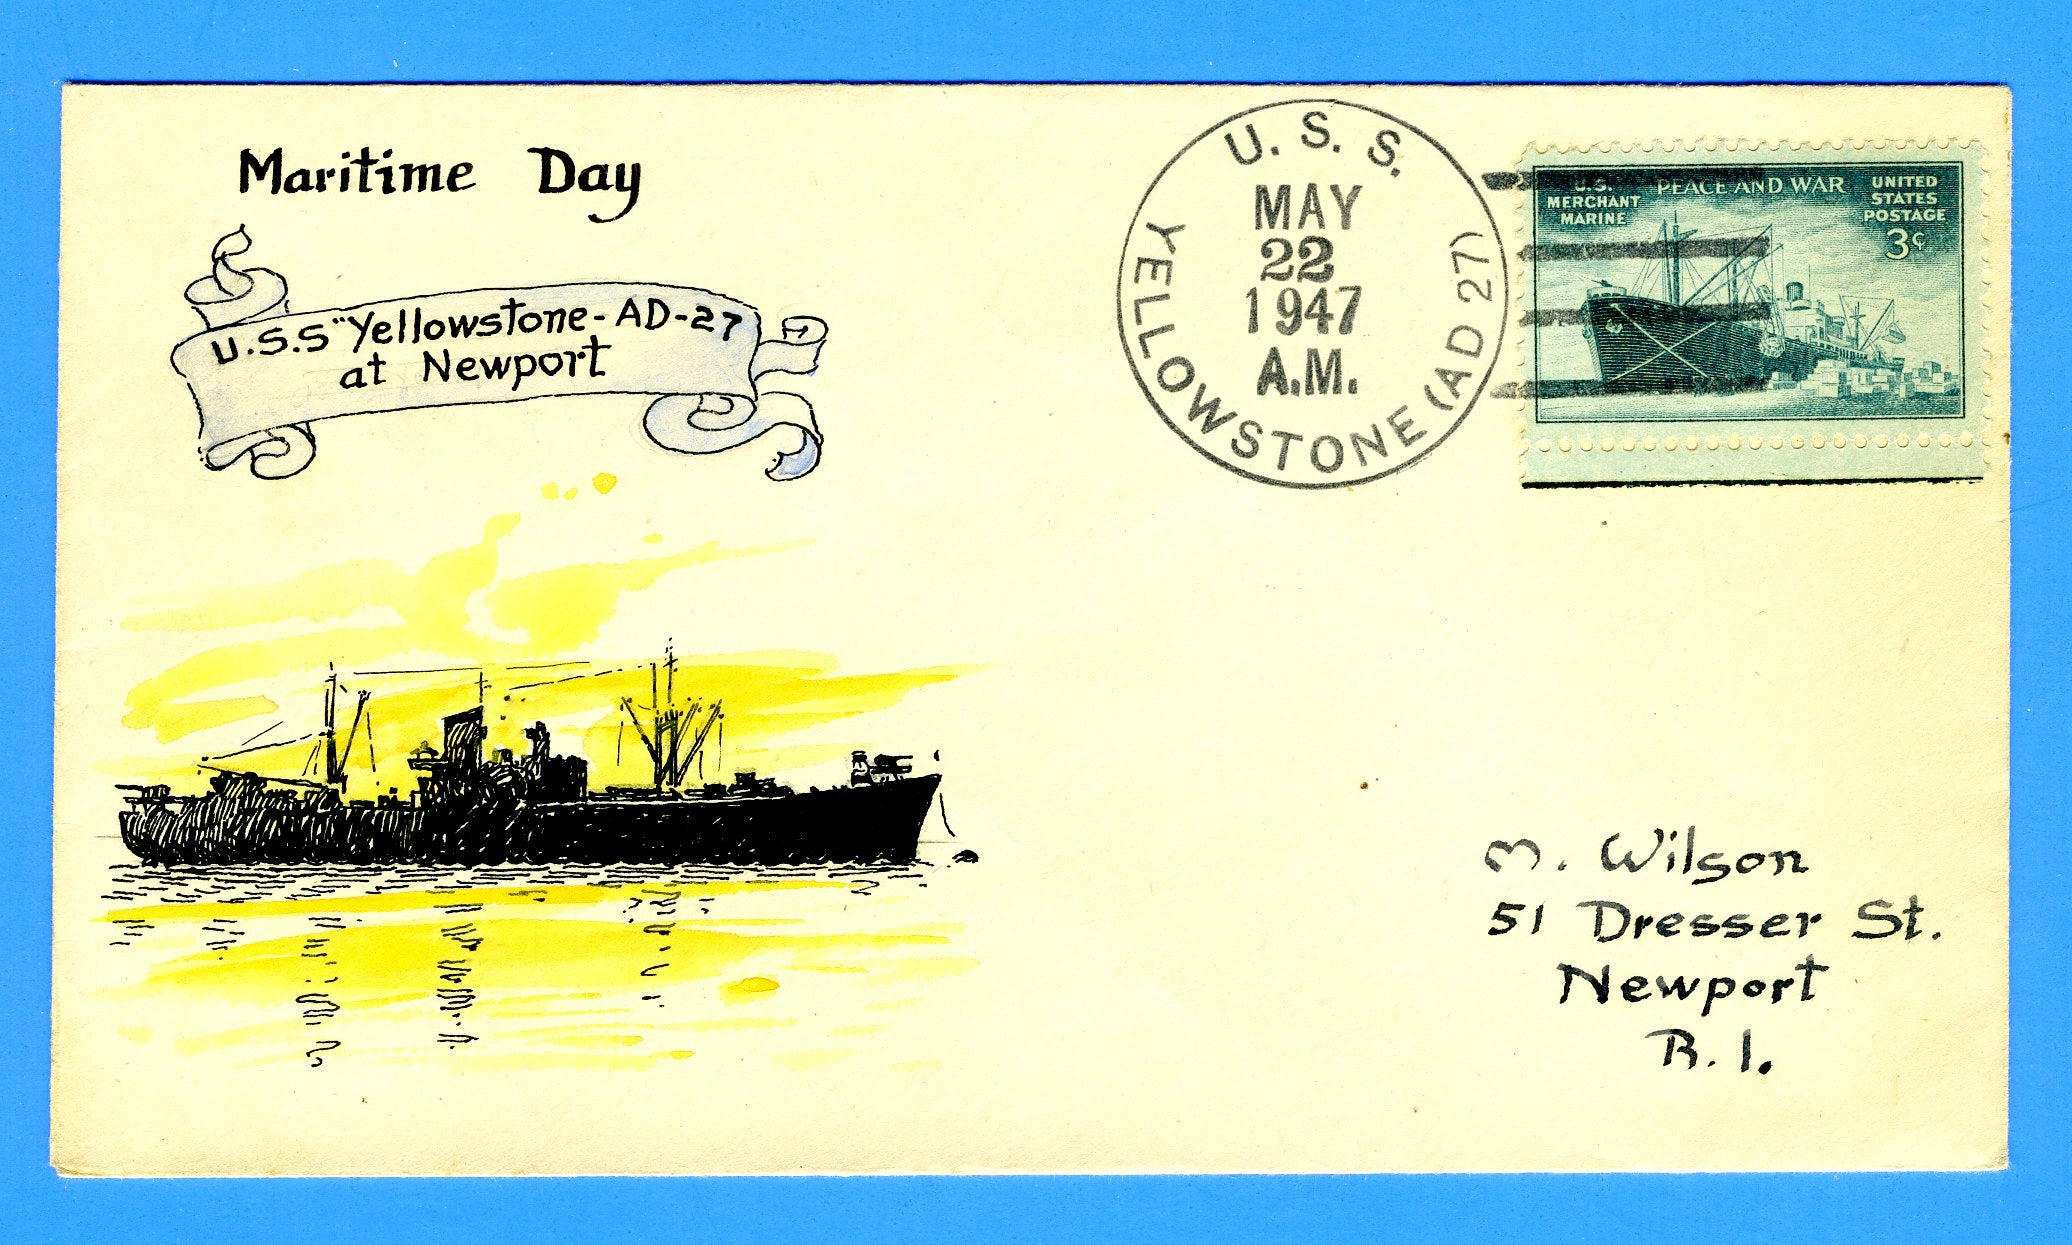 USS Yellowstone AD-27 Maritime Day May 22, 1947 - Hand Painted Wilson Cachet